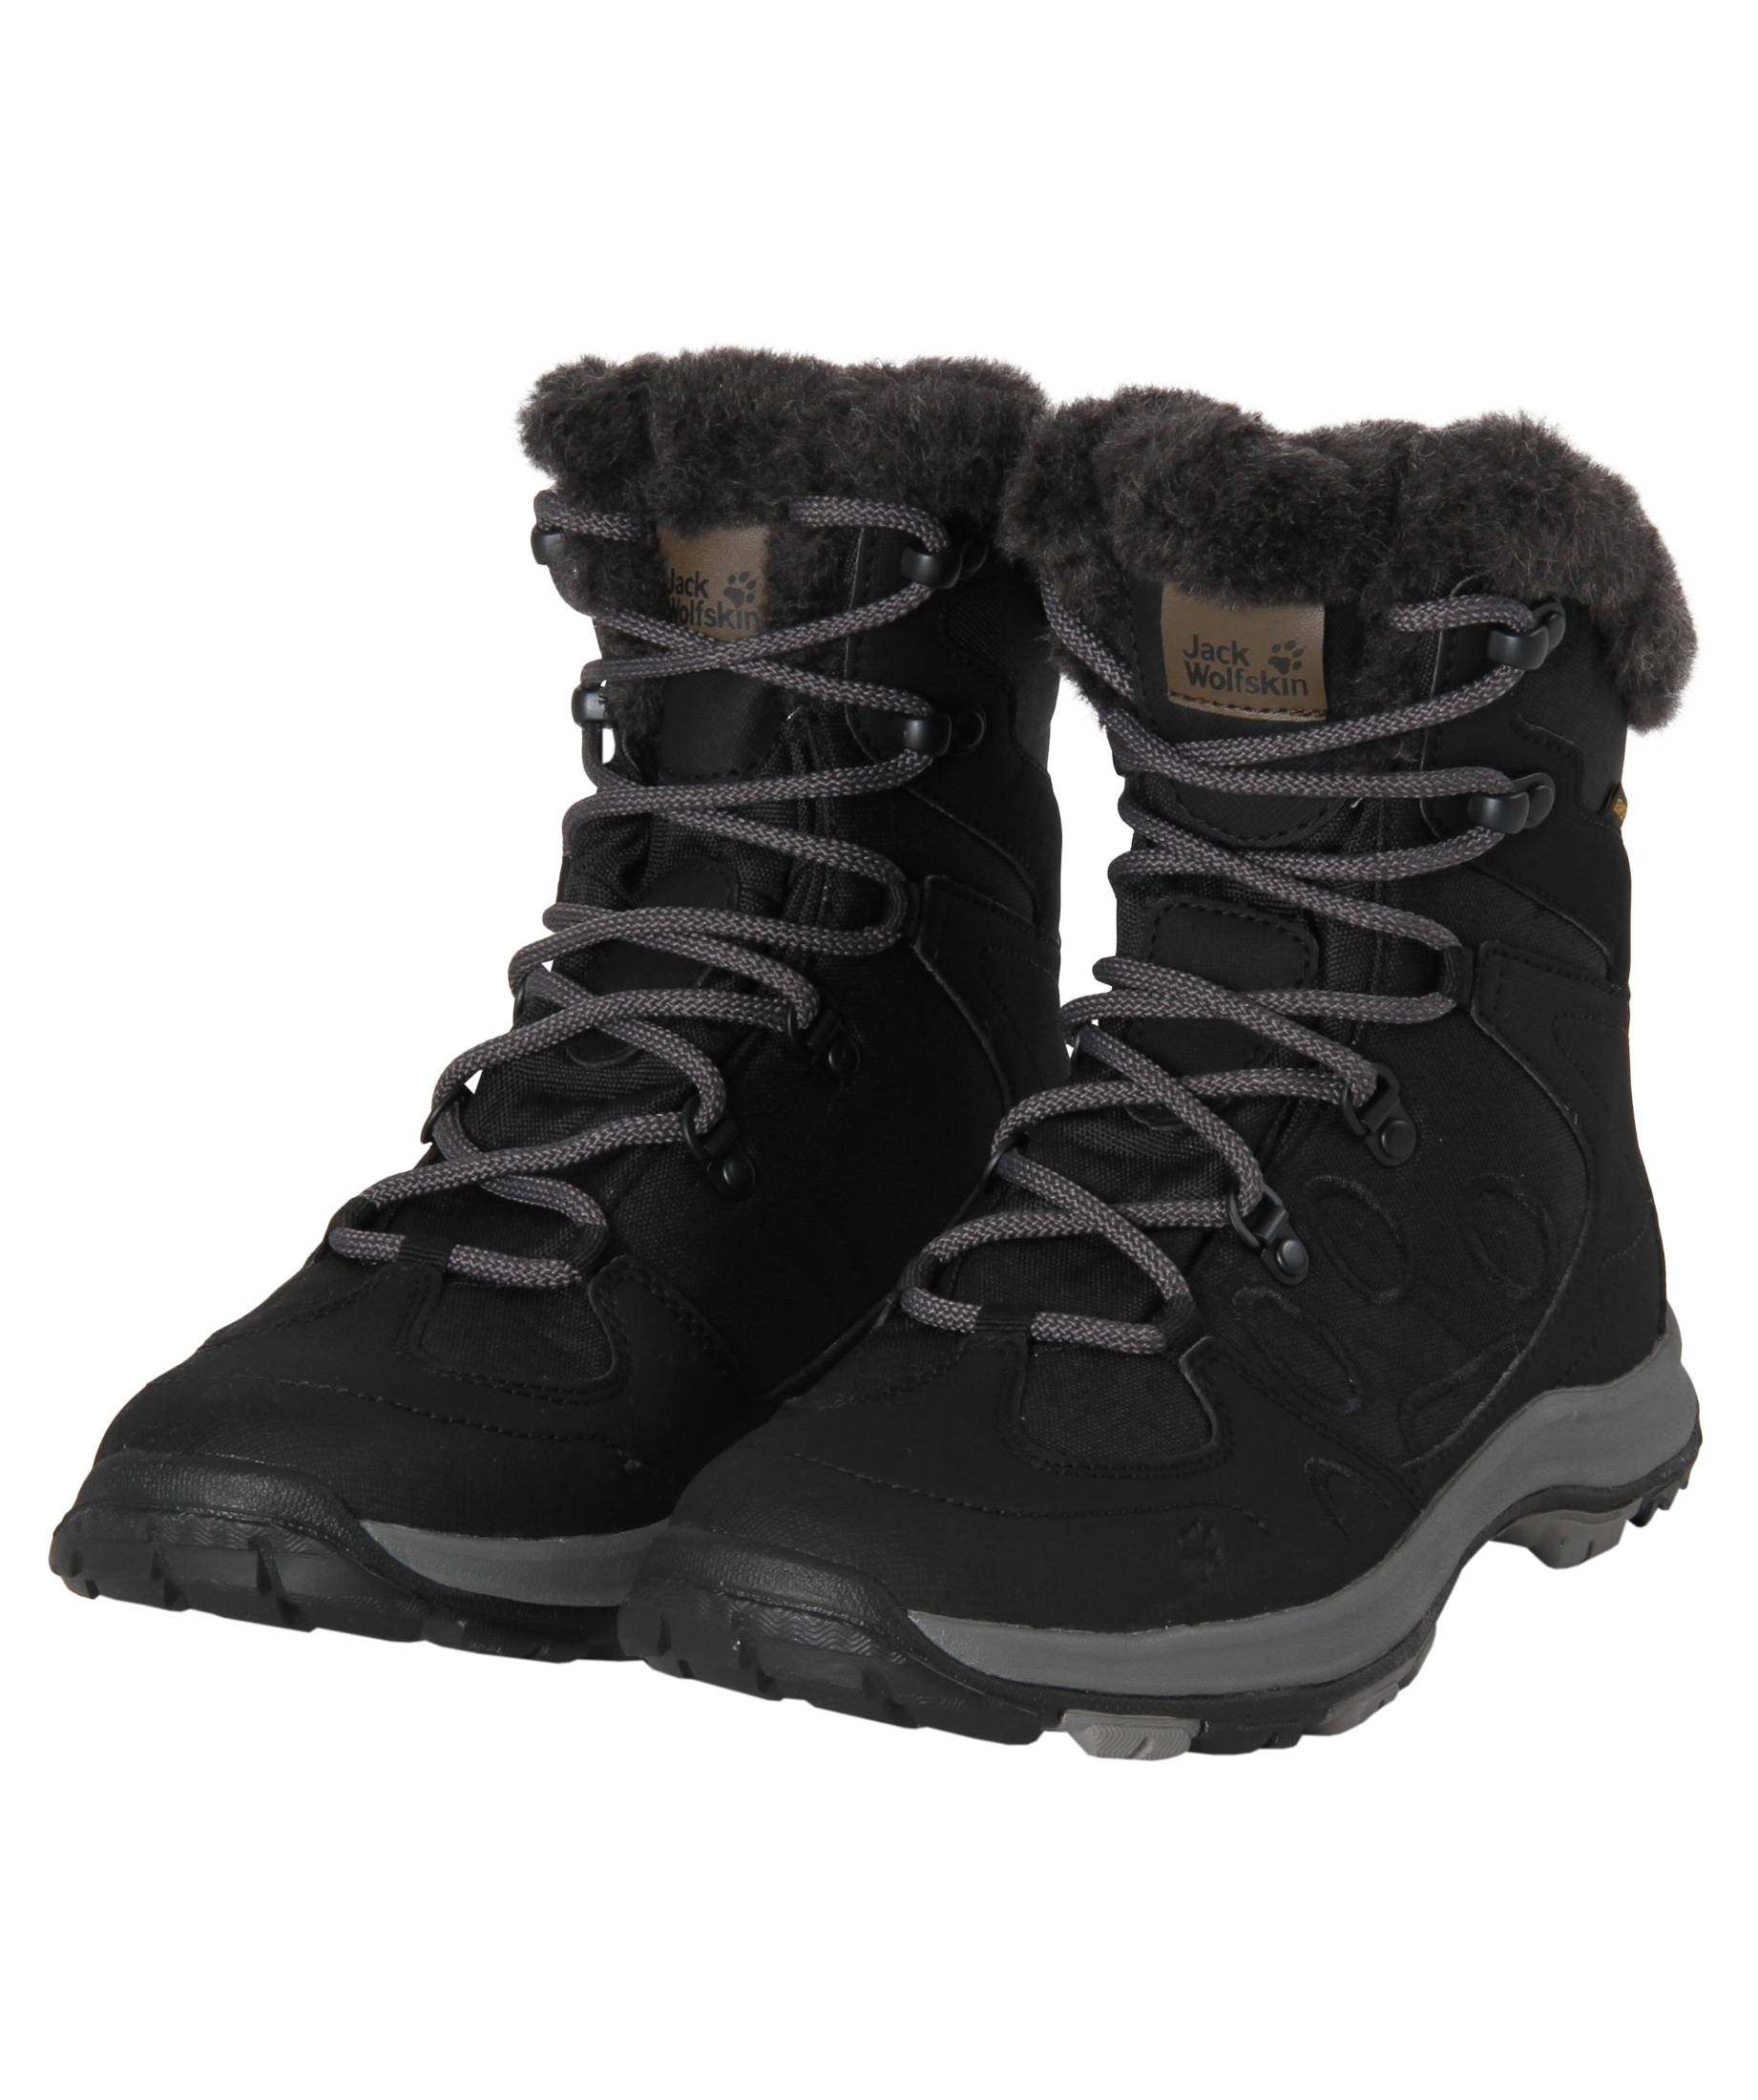 jack wolfskin winter boots damen